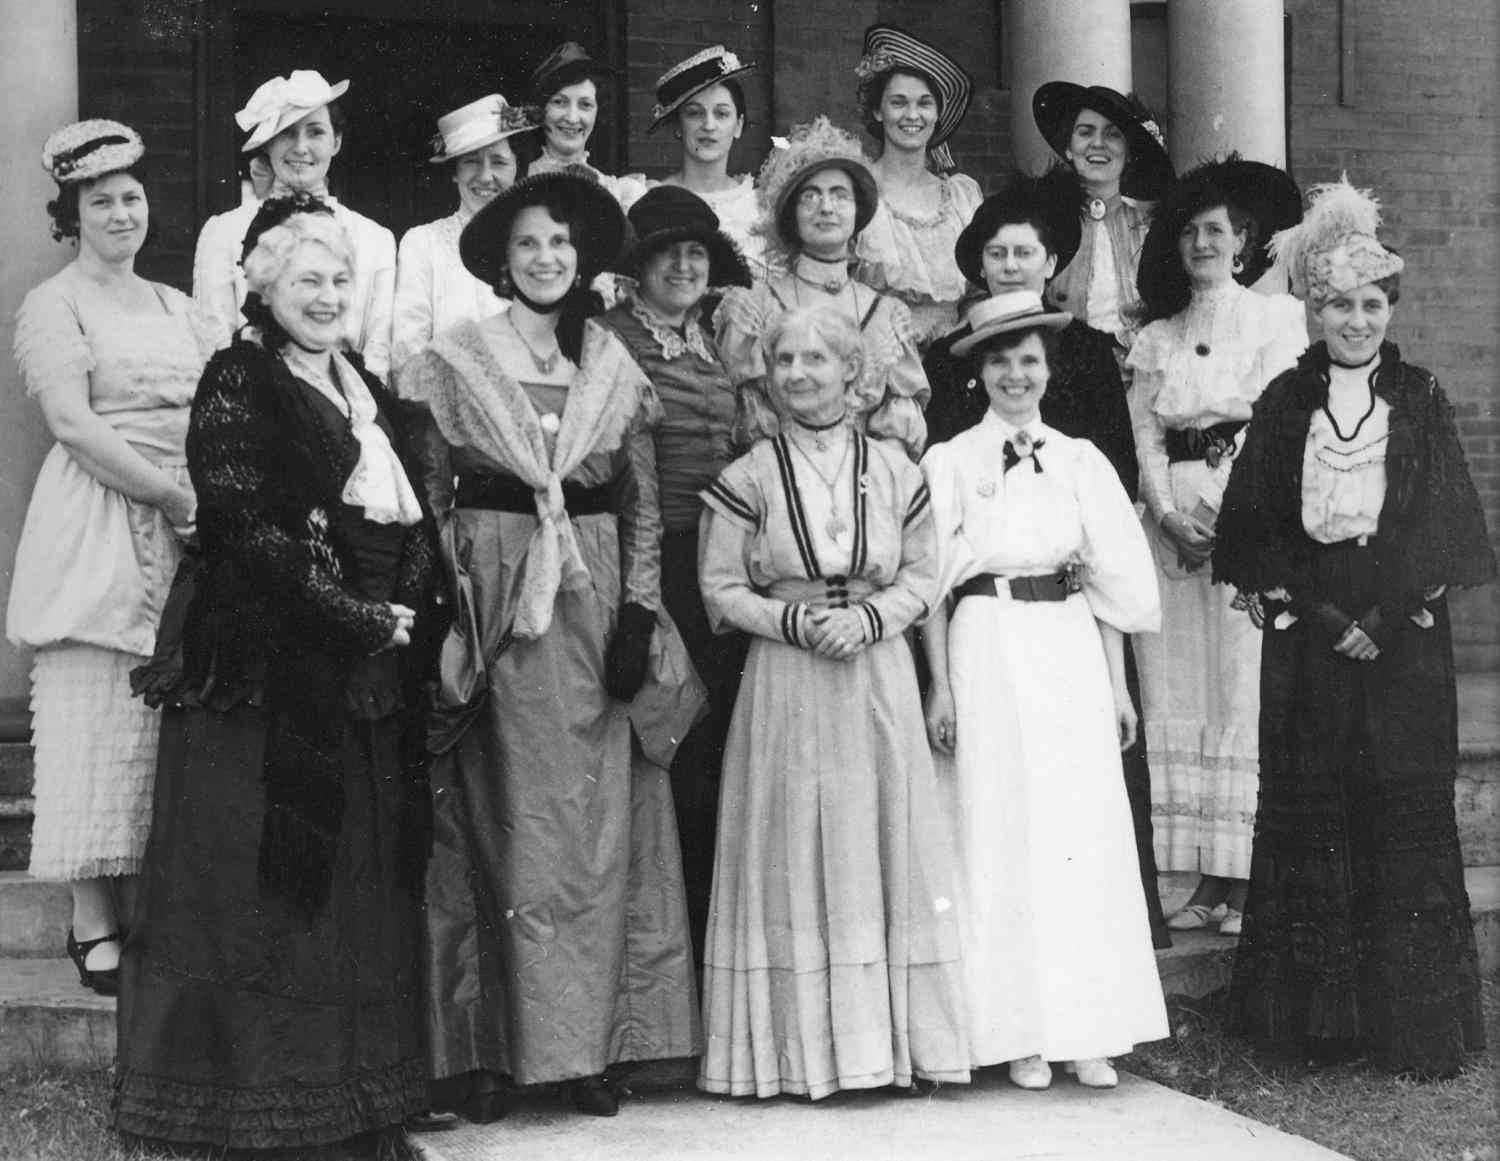 A Century of Service: Imperial Order Daughters of the Empire